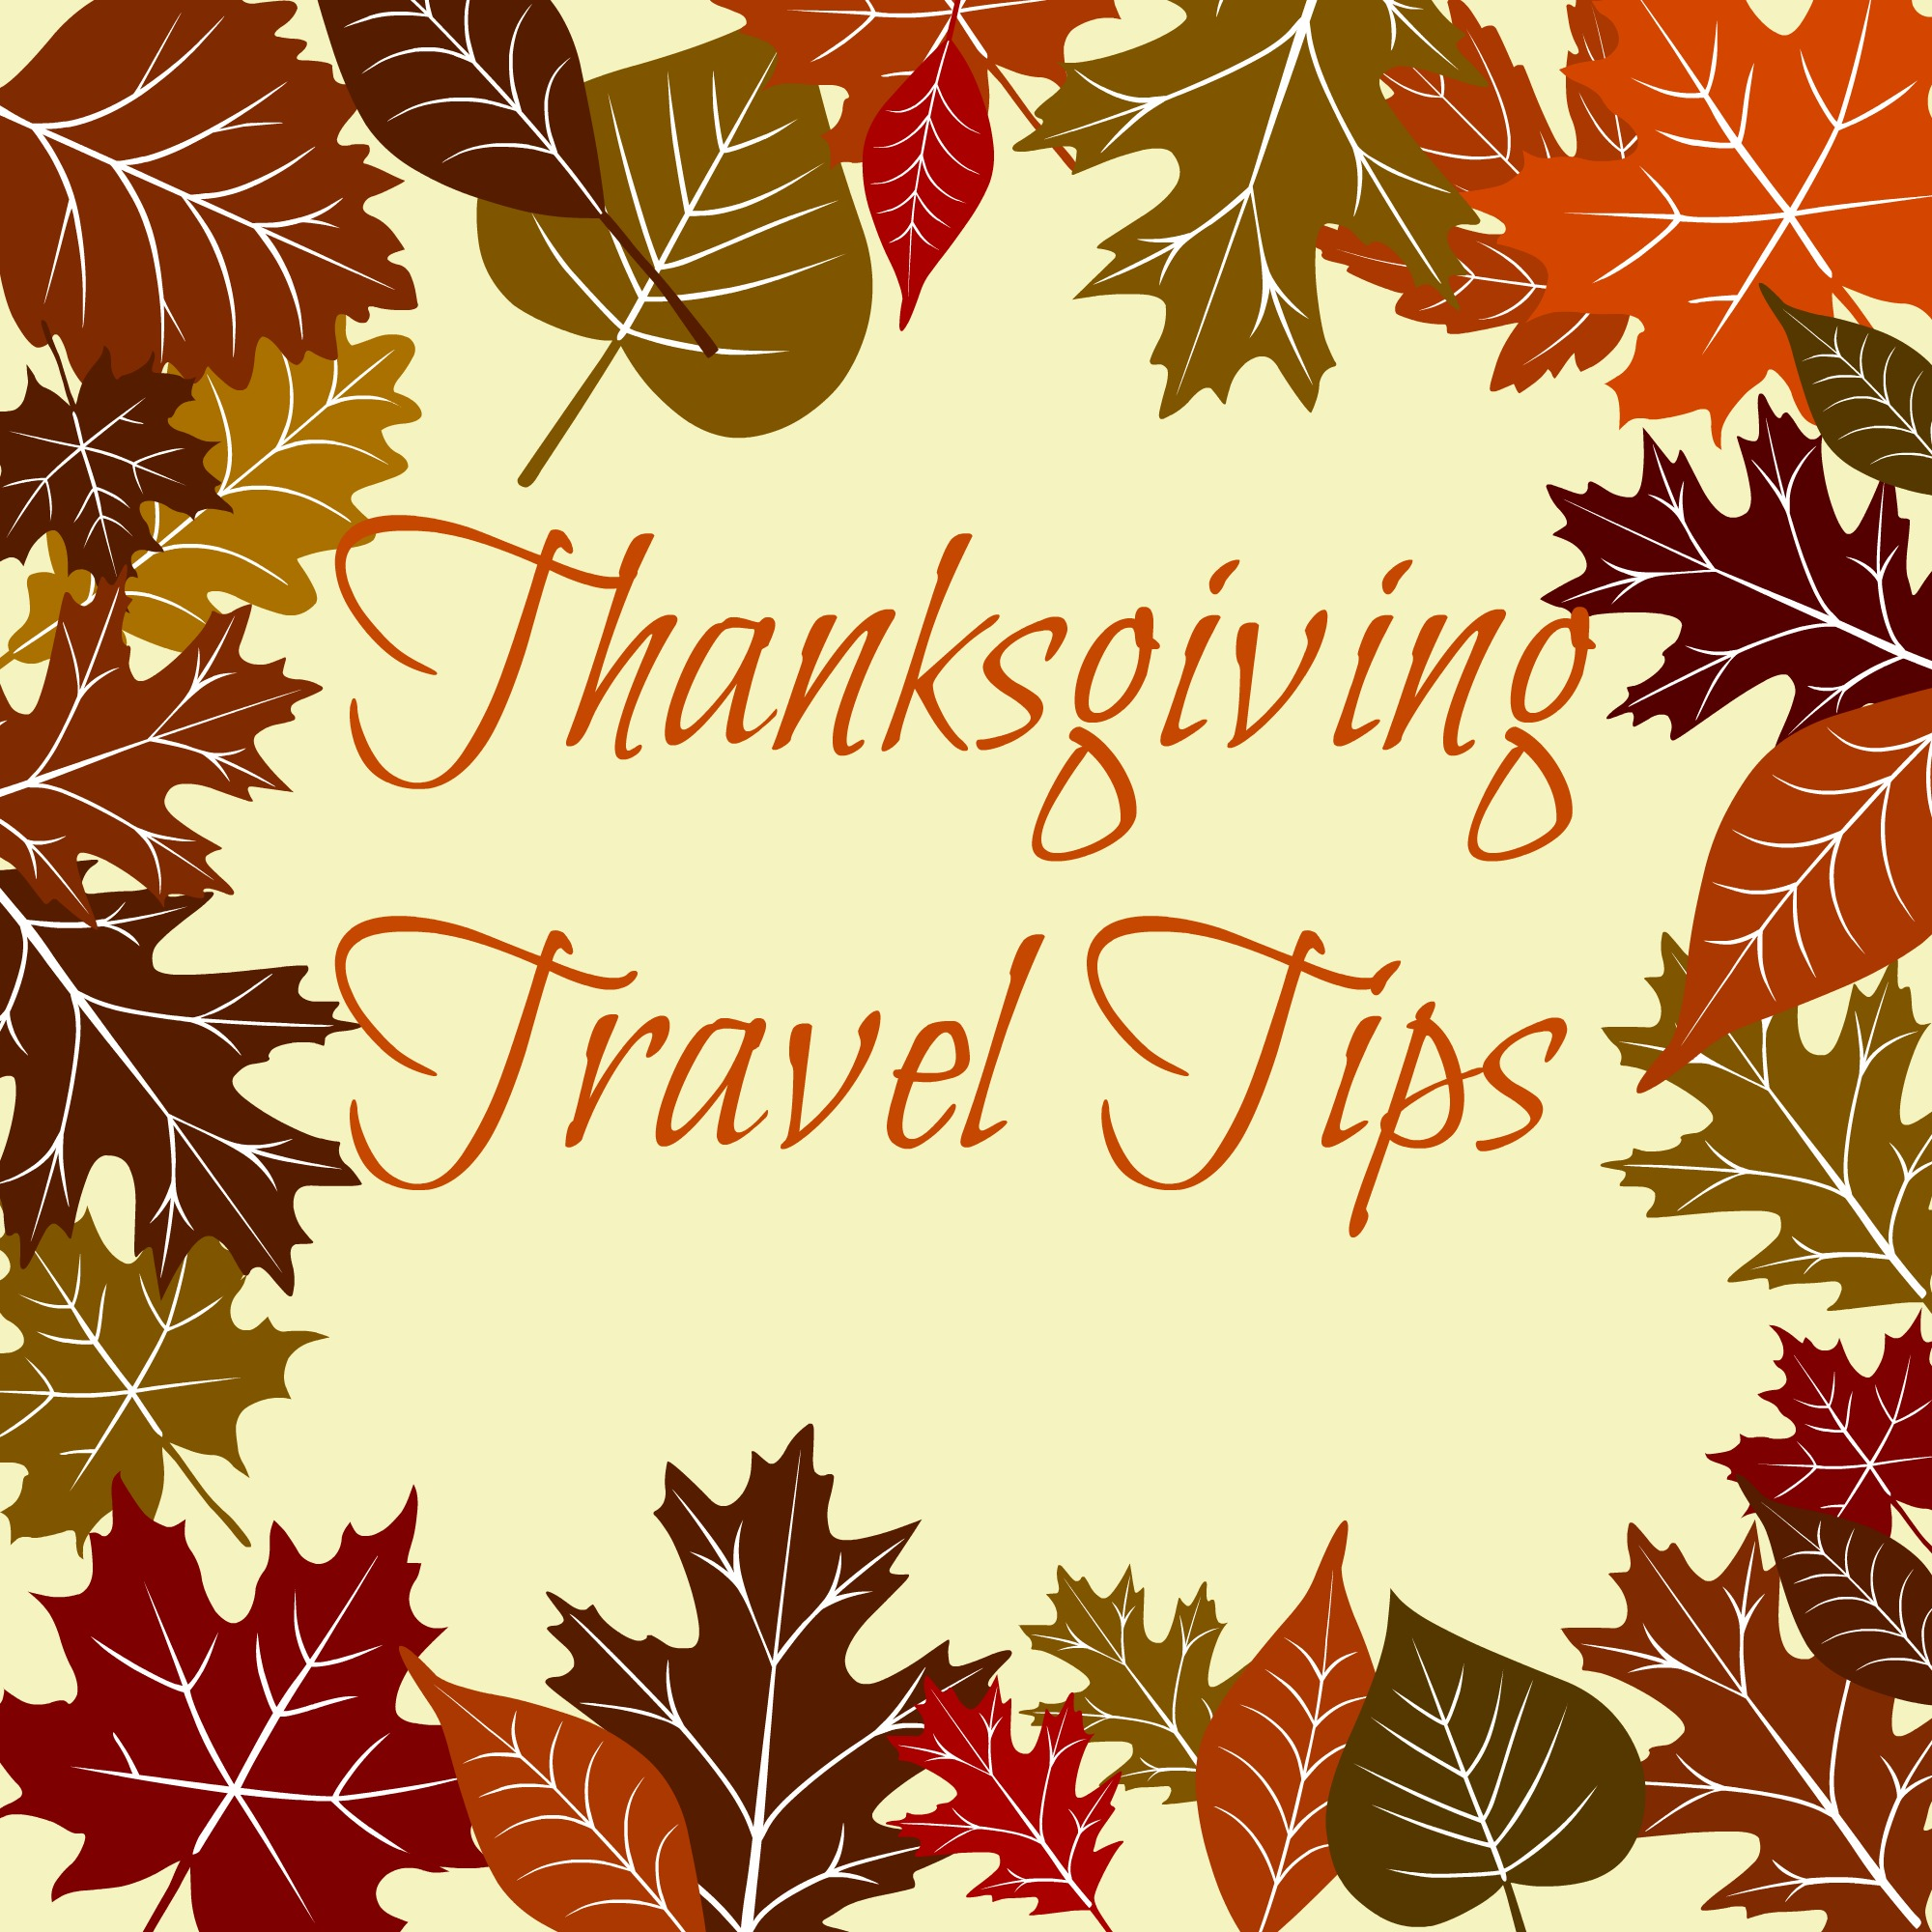 11-16-thanksgiving-travel-tips